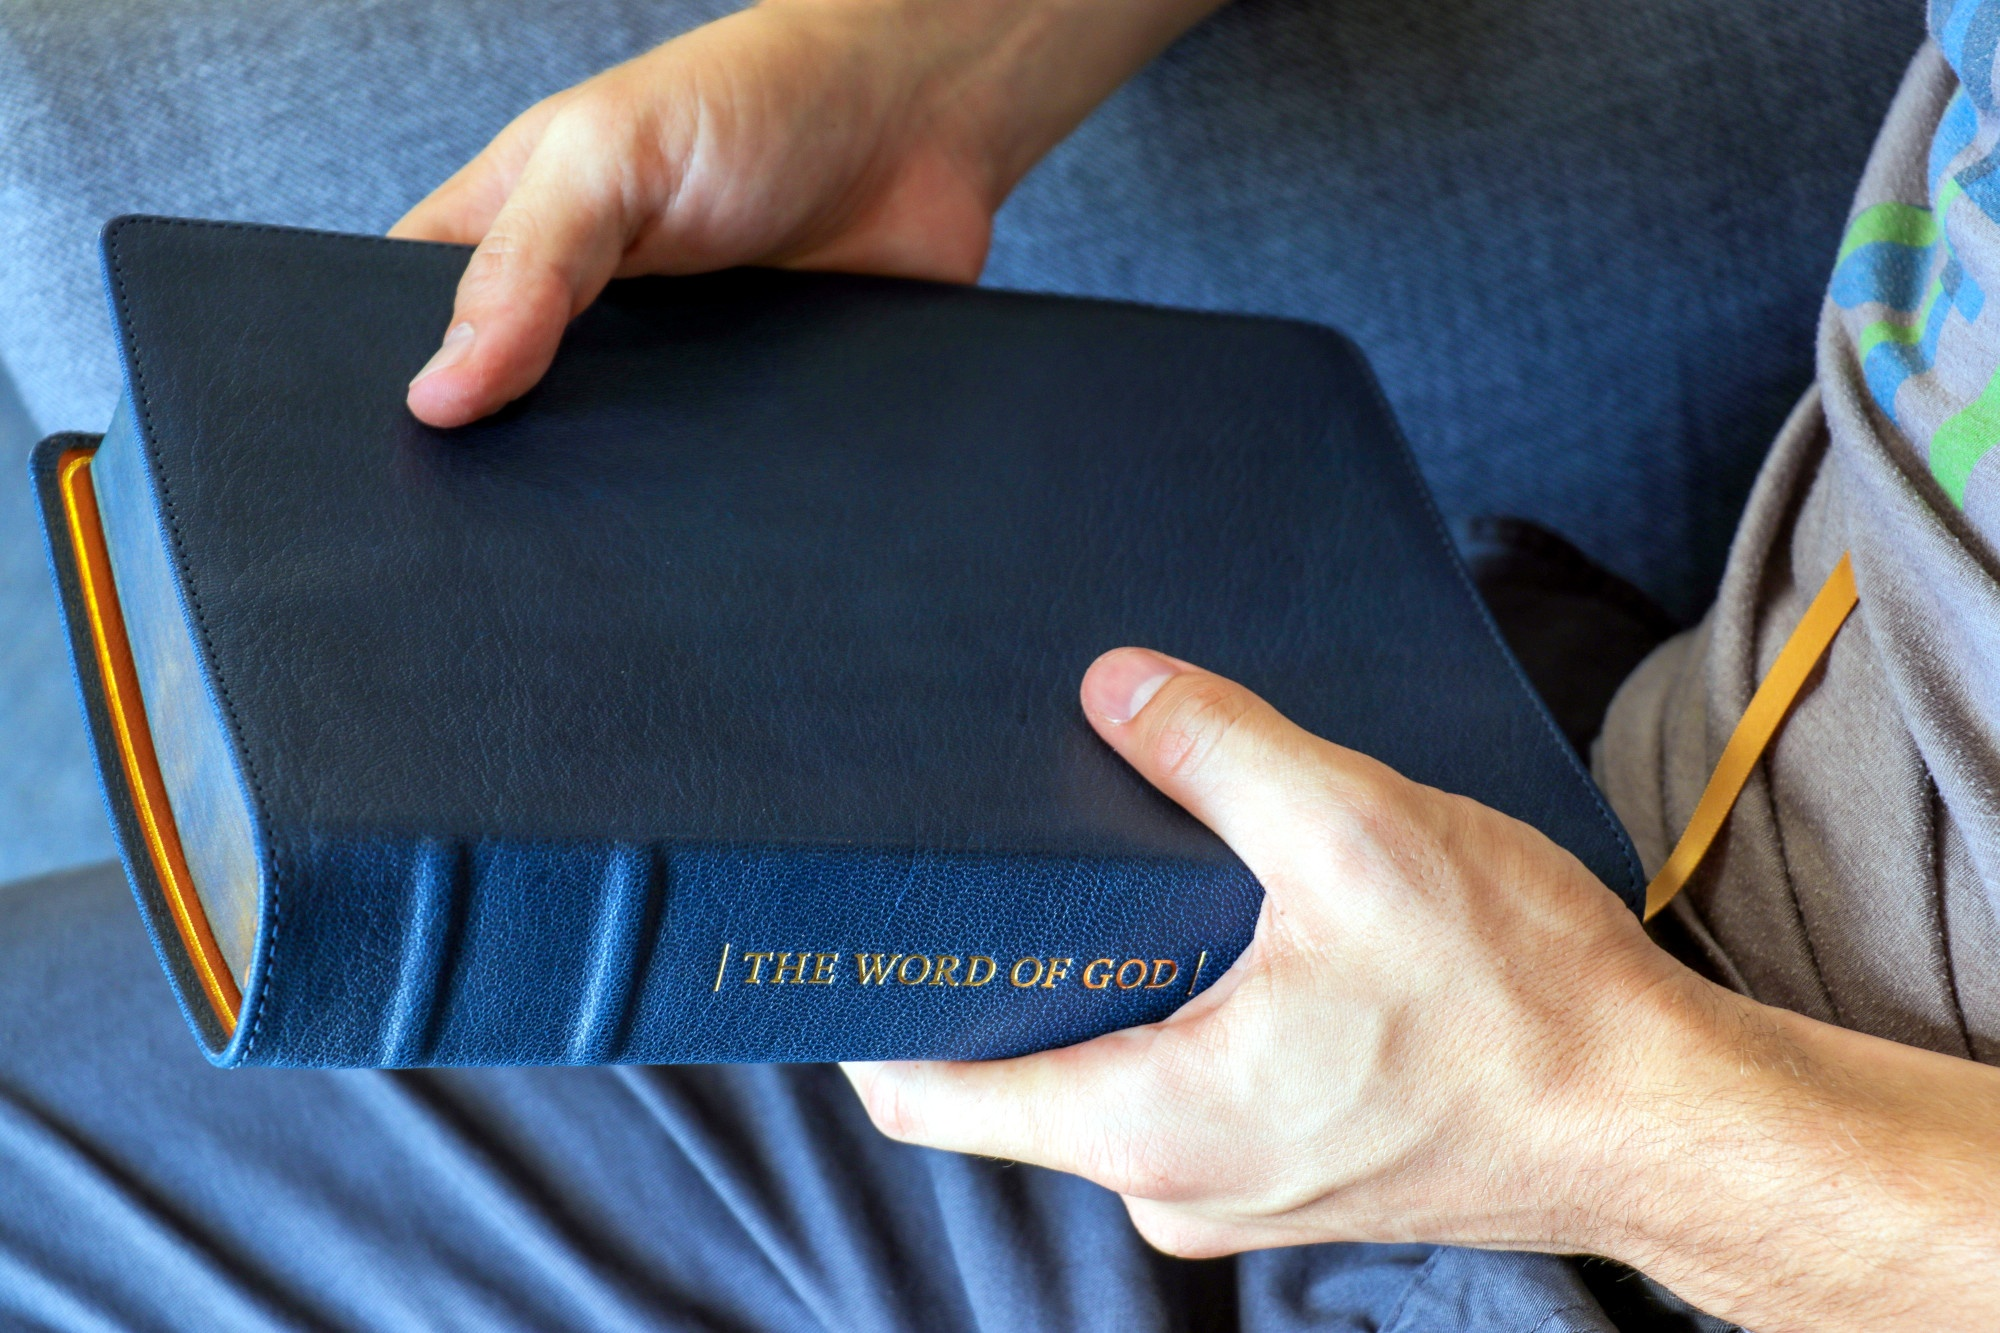 Man sitting holding a Bible with a blue leather cover